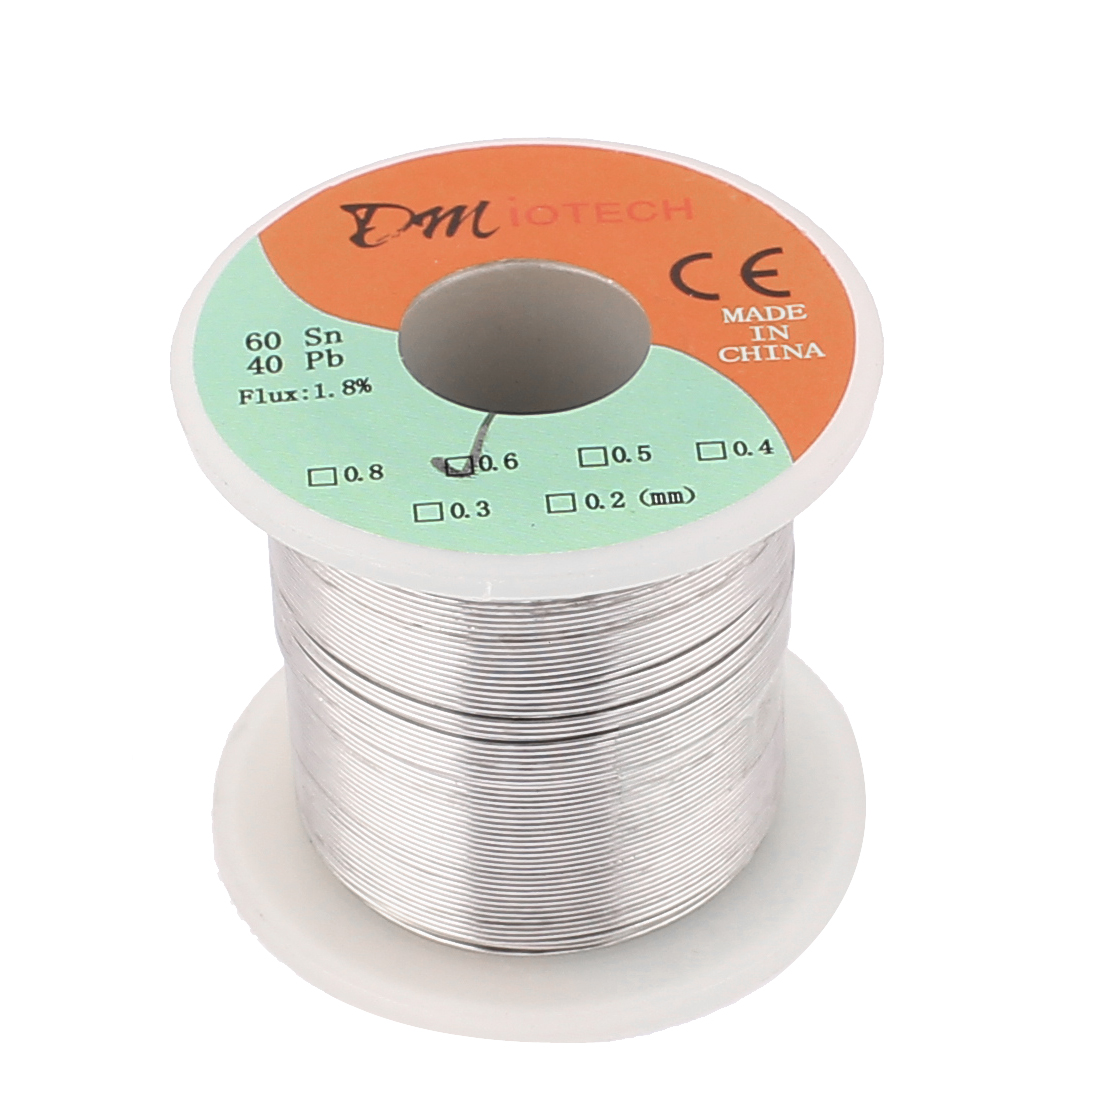 0.6mm 200g 60/40 Tin Lead Roll Solder Soldering Wire Spool Reel